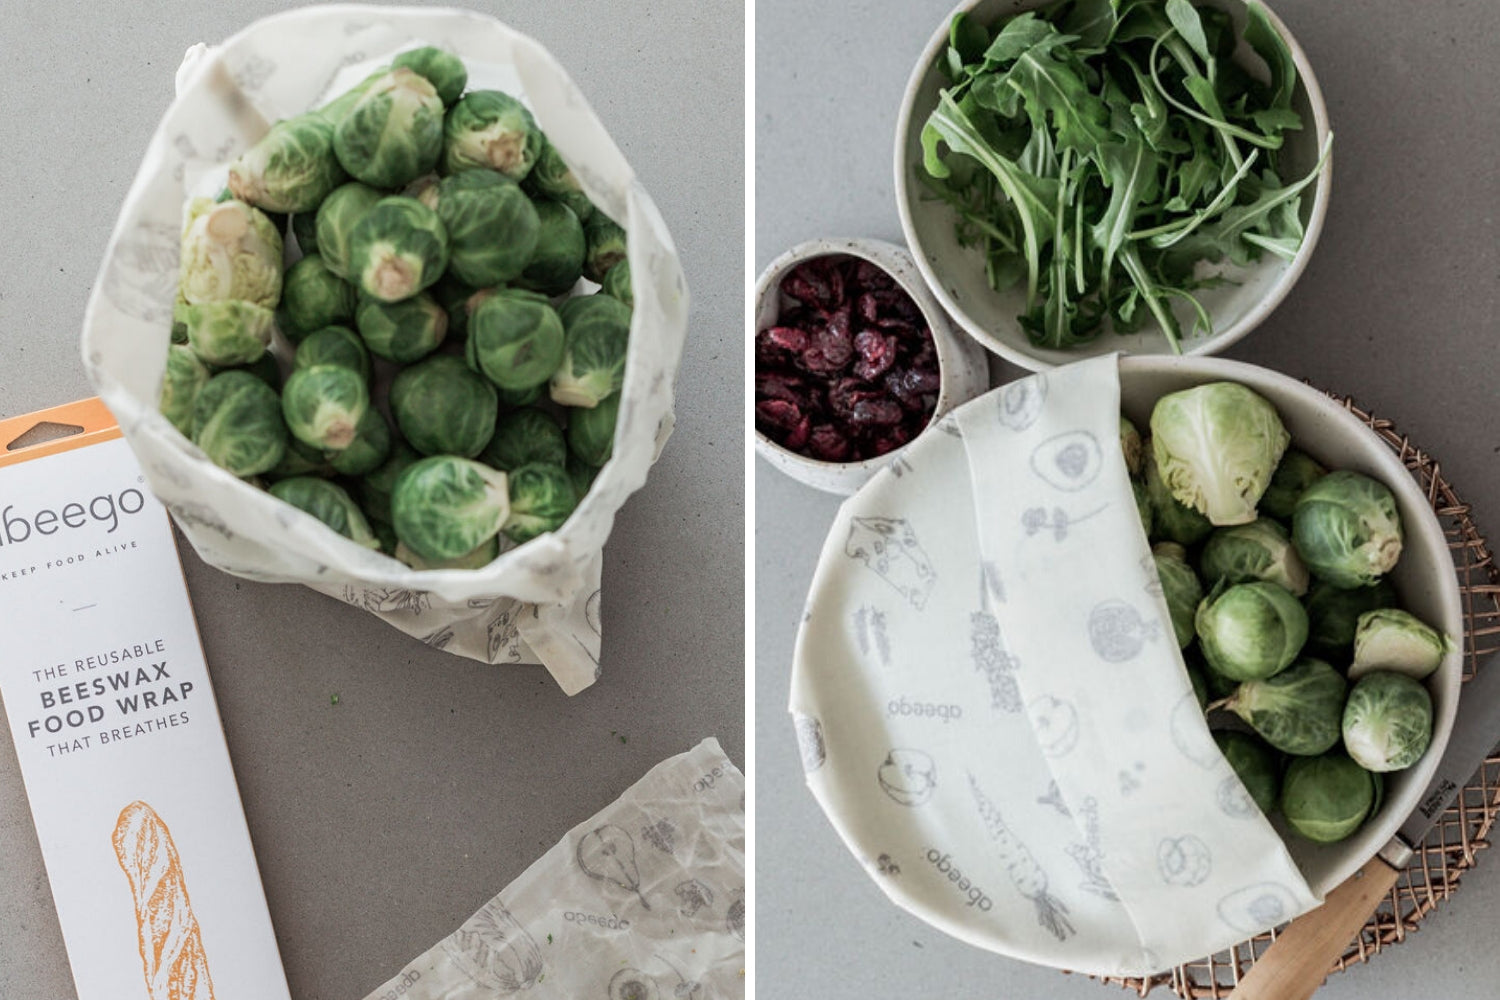 How to wrap Brussels sprouts to keep them fresher longer | reusable beeswax food wrap